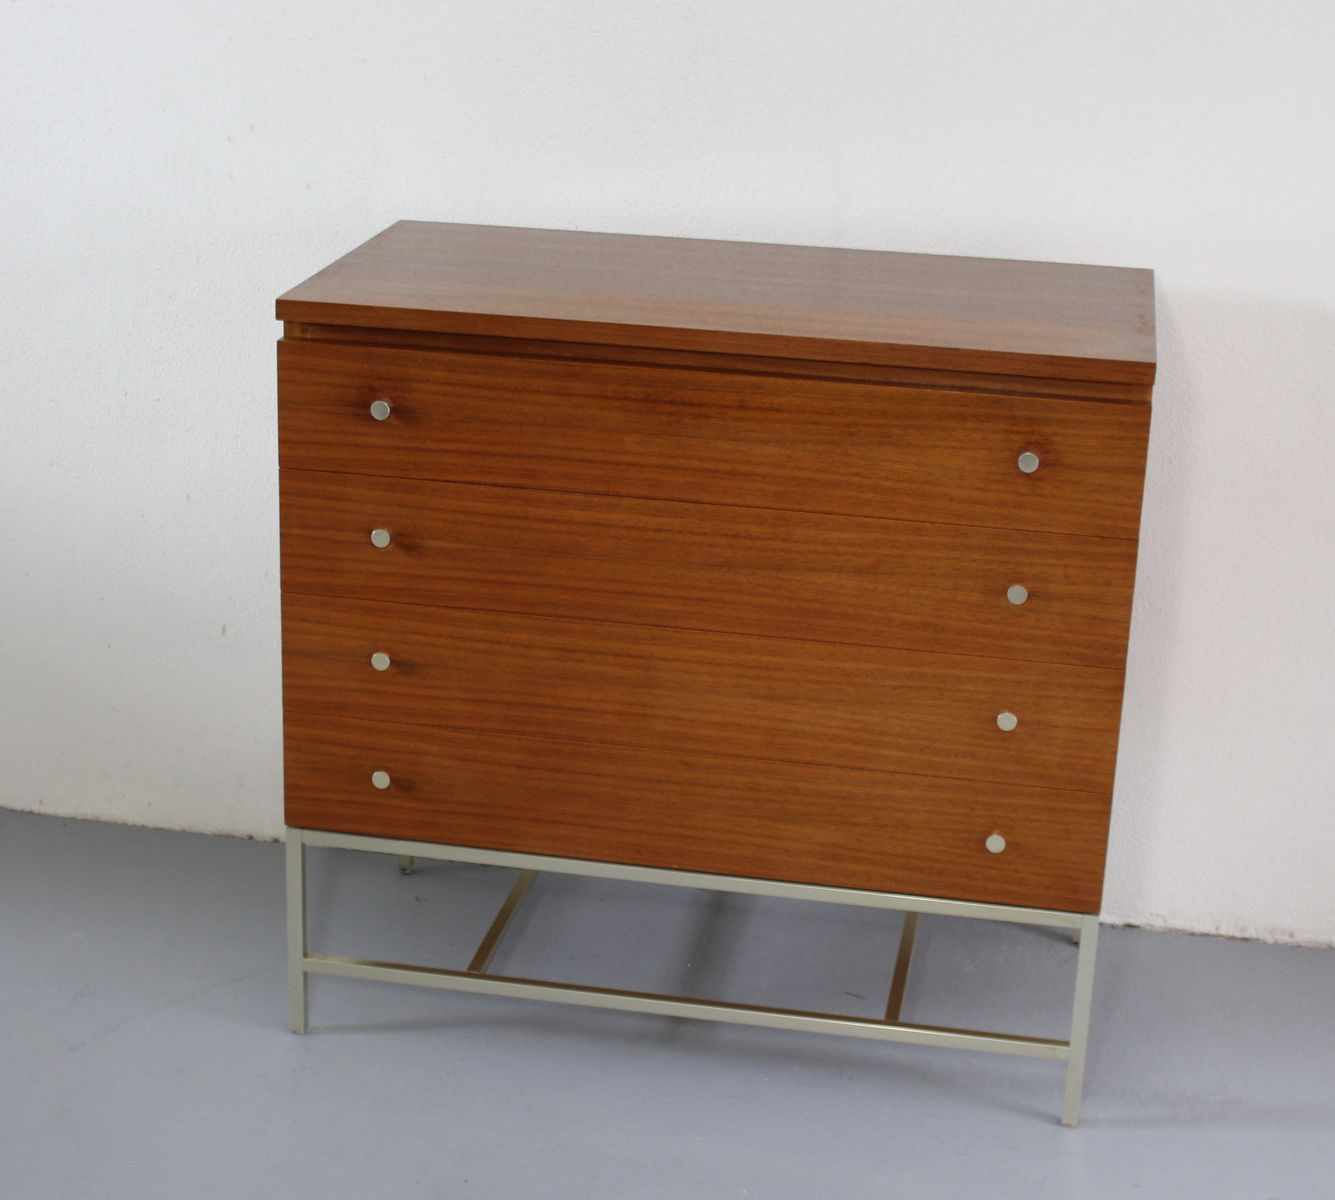 vintage american walnut chest of drawers by paul mccobb for wk m bel for sale at pamono. Black Bedroom Furniture Sets. Home Design Ideas